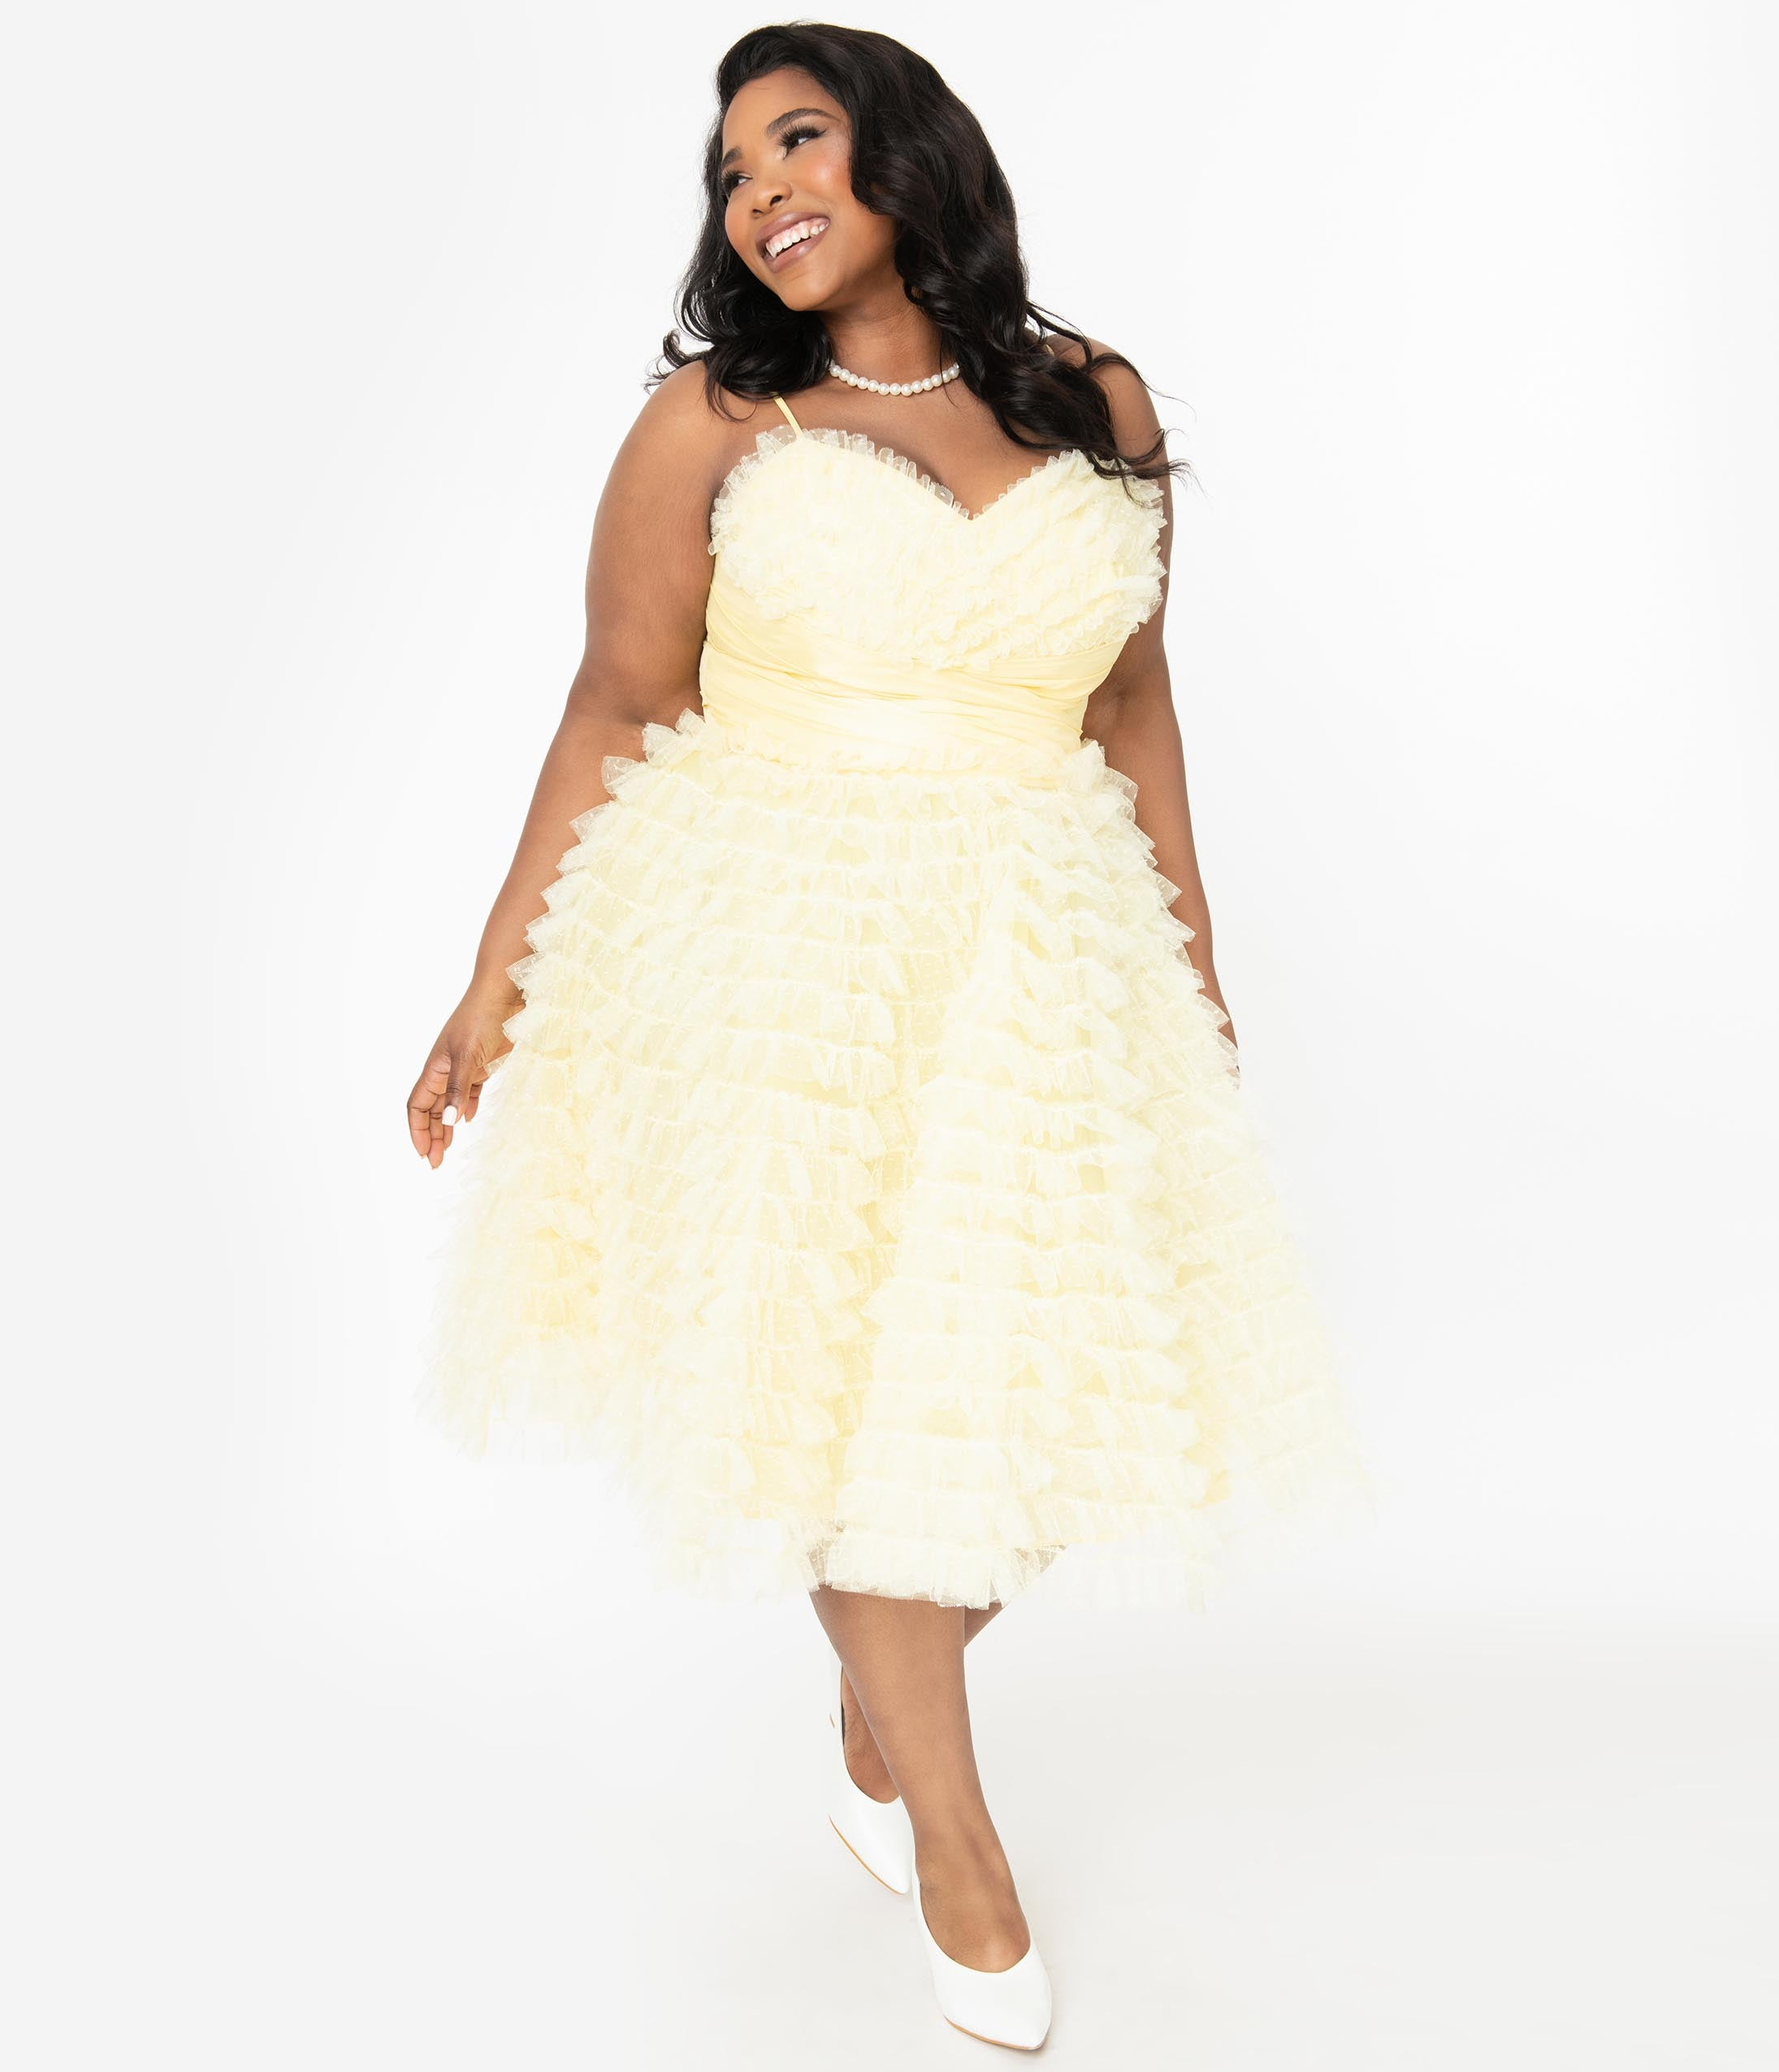 1960s Wedding History: Brides, Bridesmaids, Mothers Unique Vintage Plus Size 1950S Yellow Ruffled Tulle Cupcake Swing Dress $110.00 AT vintagedancer.com